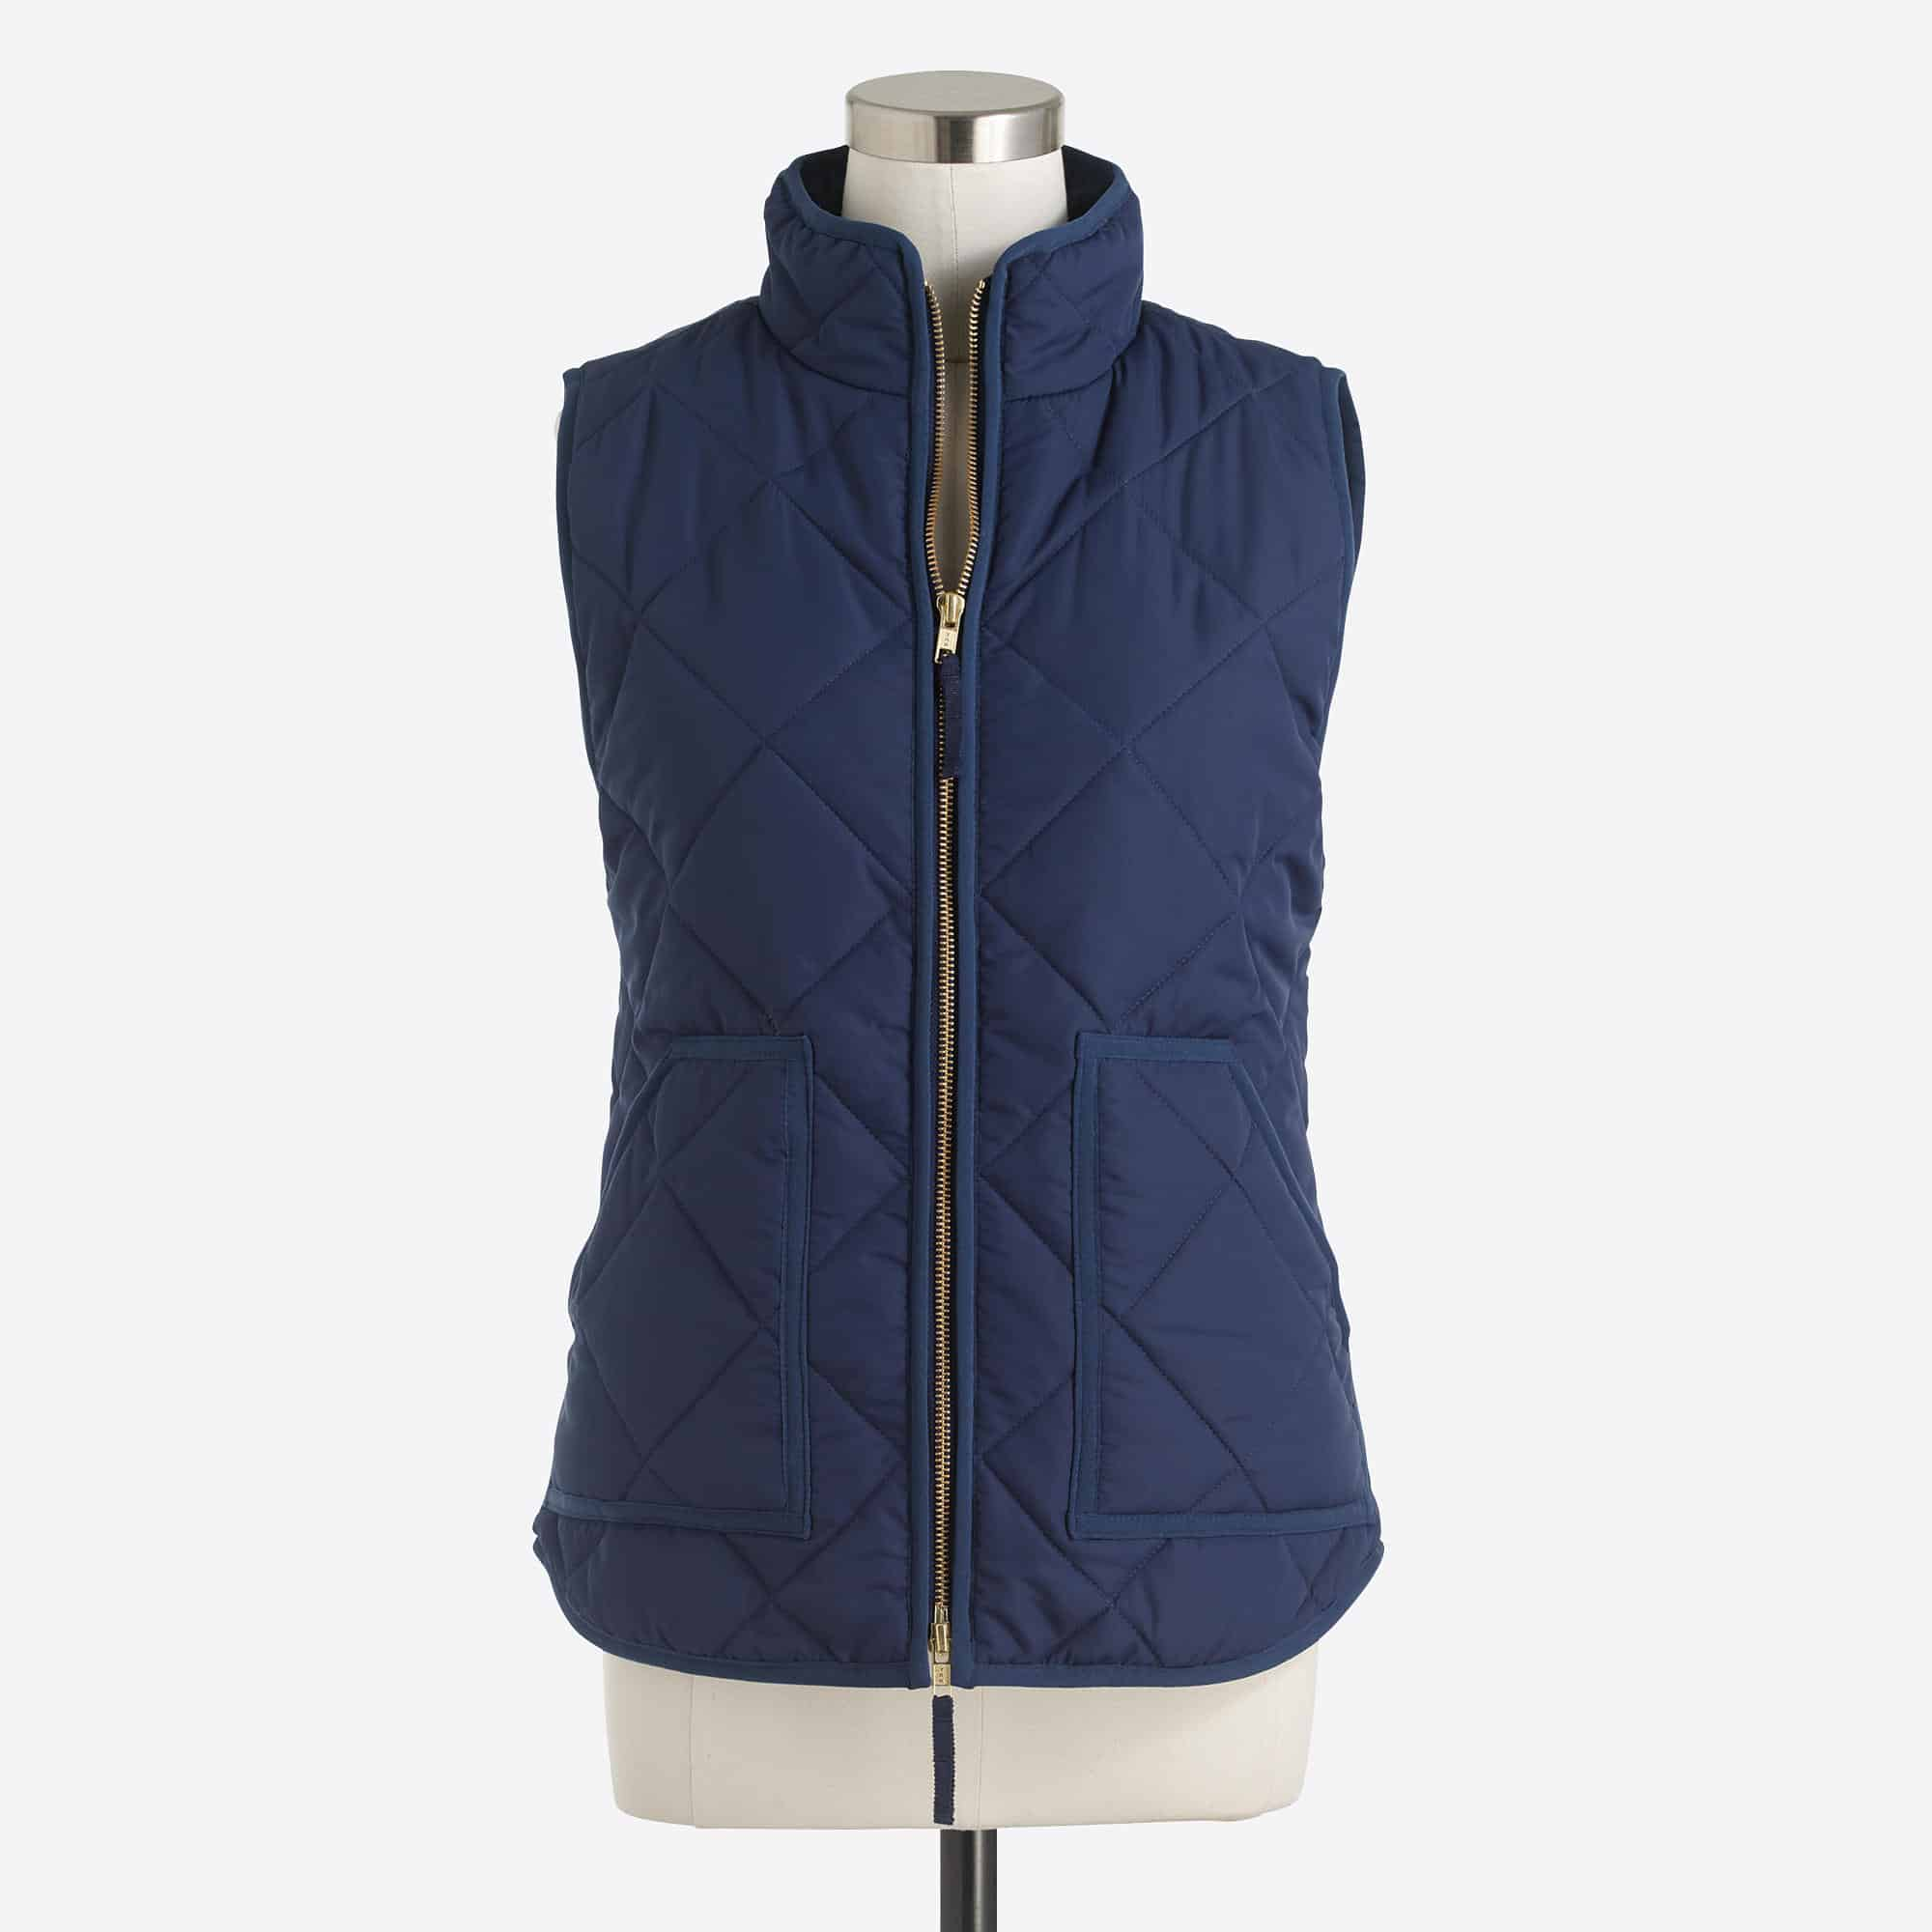 Great navy quilted puffer vest -- perfect for Fall weather!